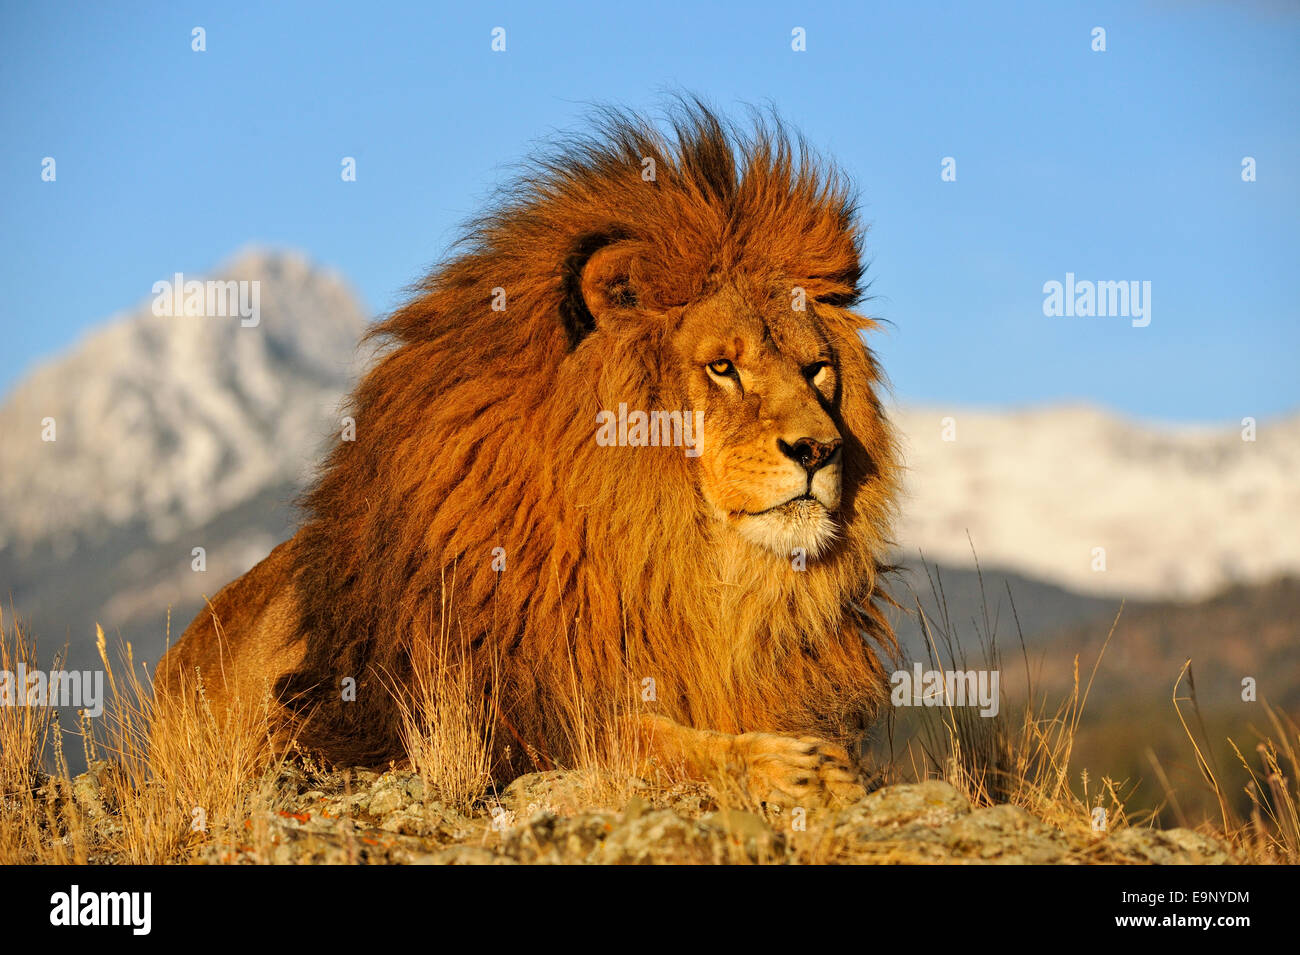 Lions in the Wild - Bing images